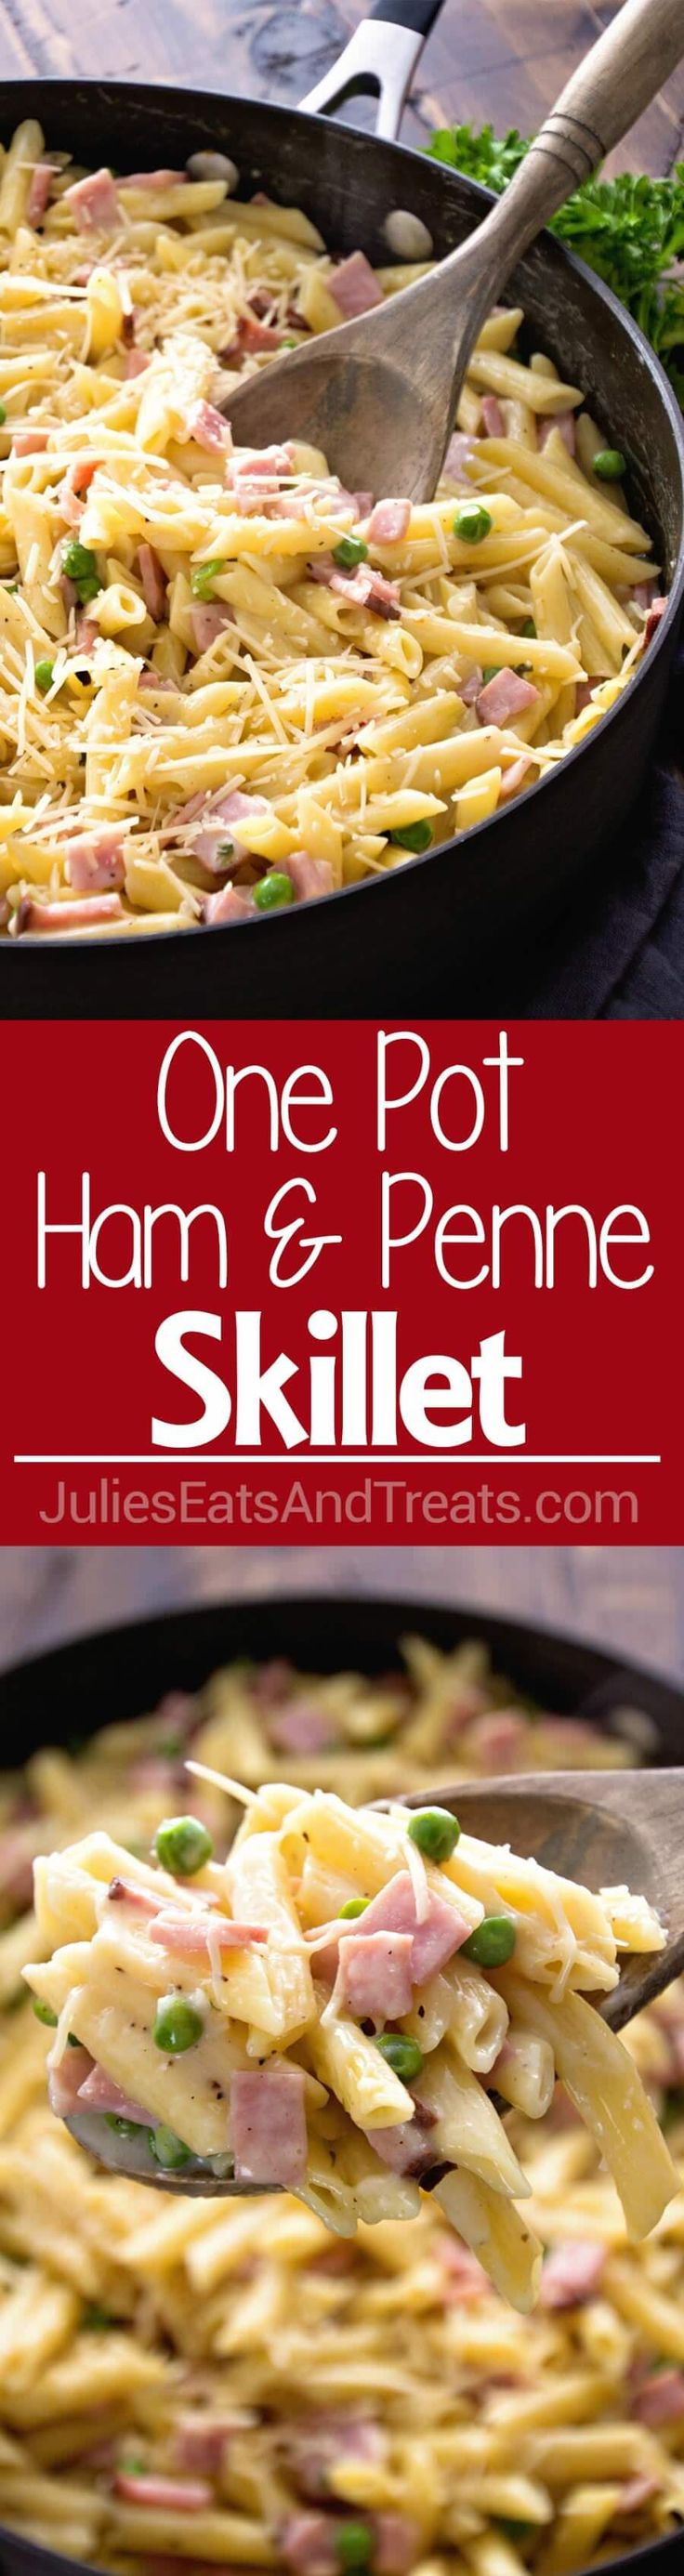 One Pot Ham & Penne Skillet Recipe ~ Delicious Pasta Perfect for a Quick Dinner! Loaded with Ham, Penne and Peas!  via @julieseats